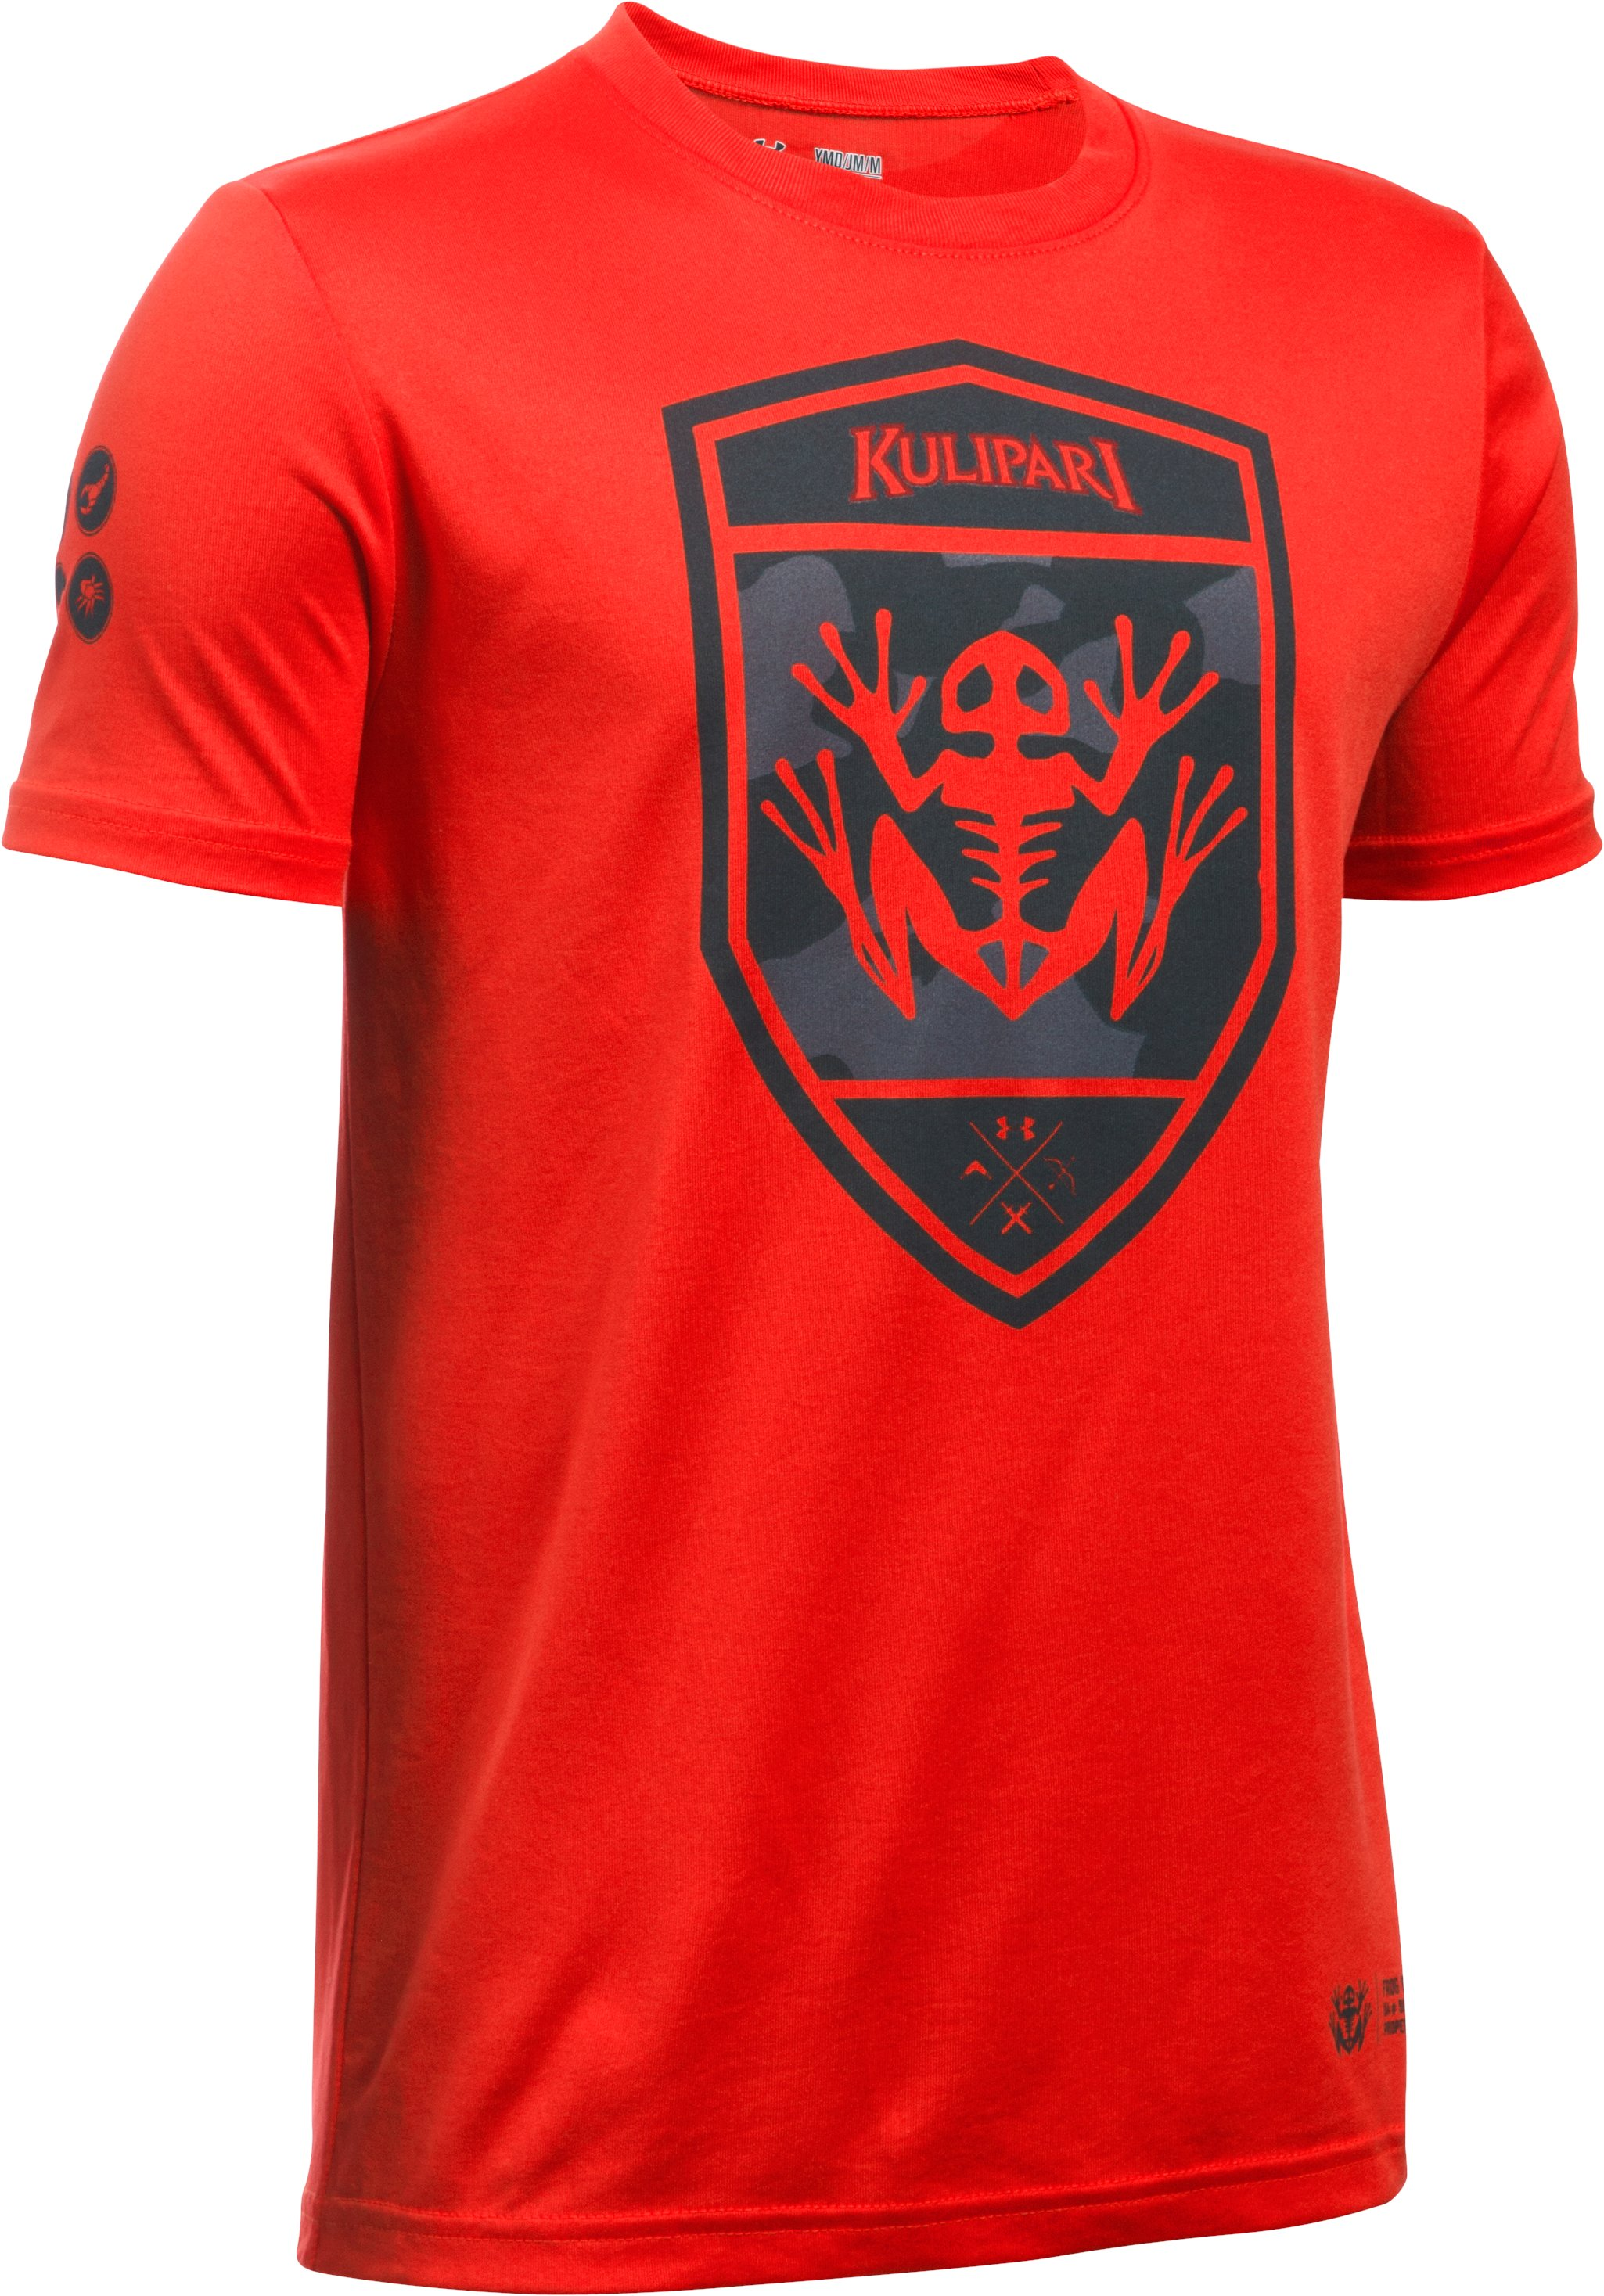 Boys' Kulipari Frog T-Shirt, RISK RED,